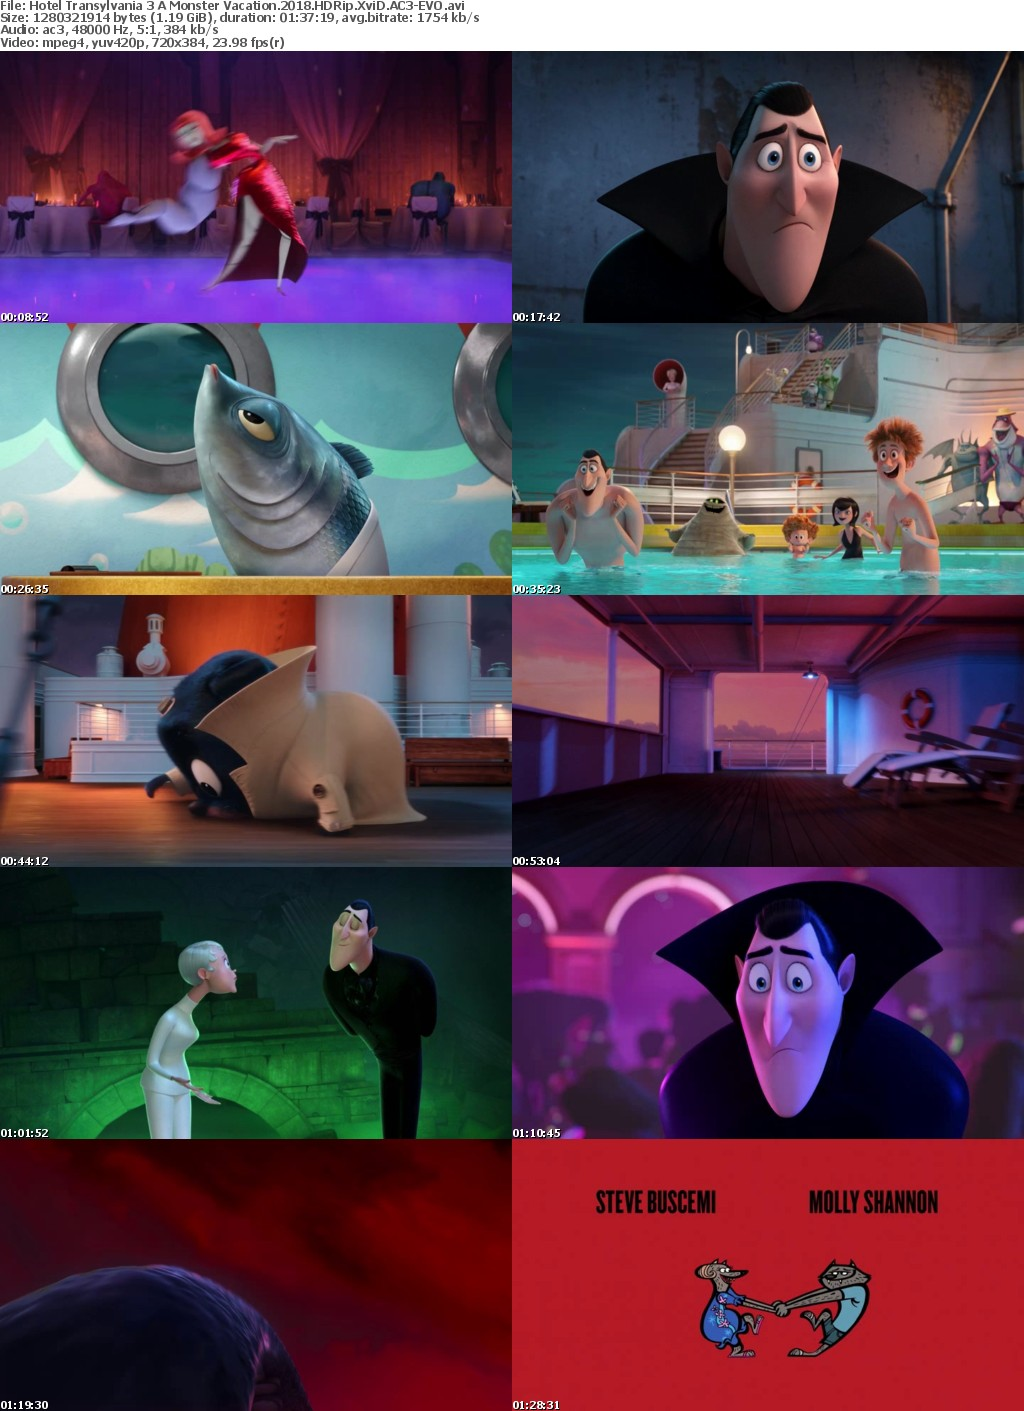 Hotel Transylvania 3 A Monster Vacation (2018) HDRip XviD AC3-EVO